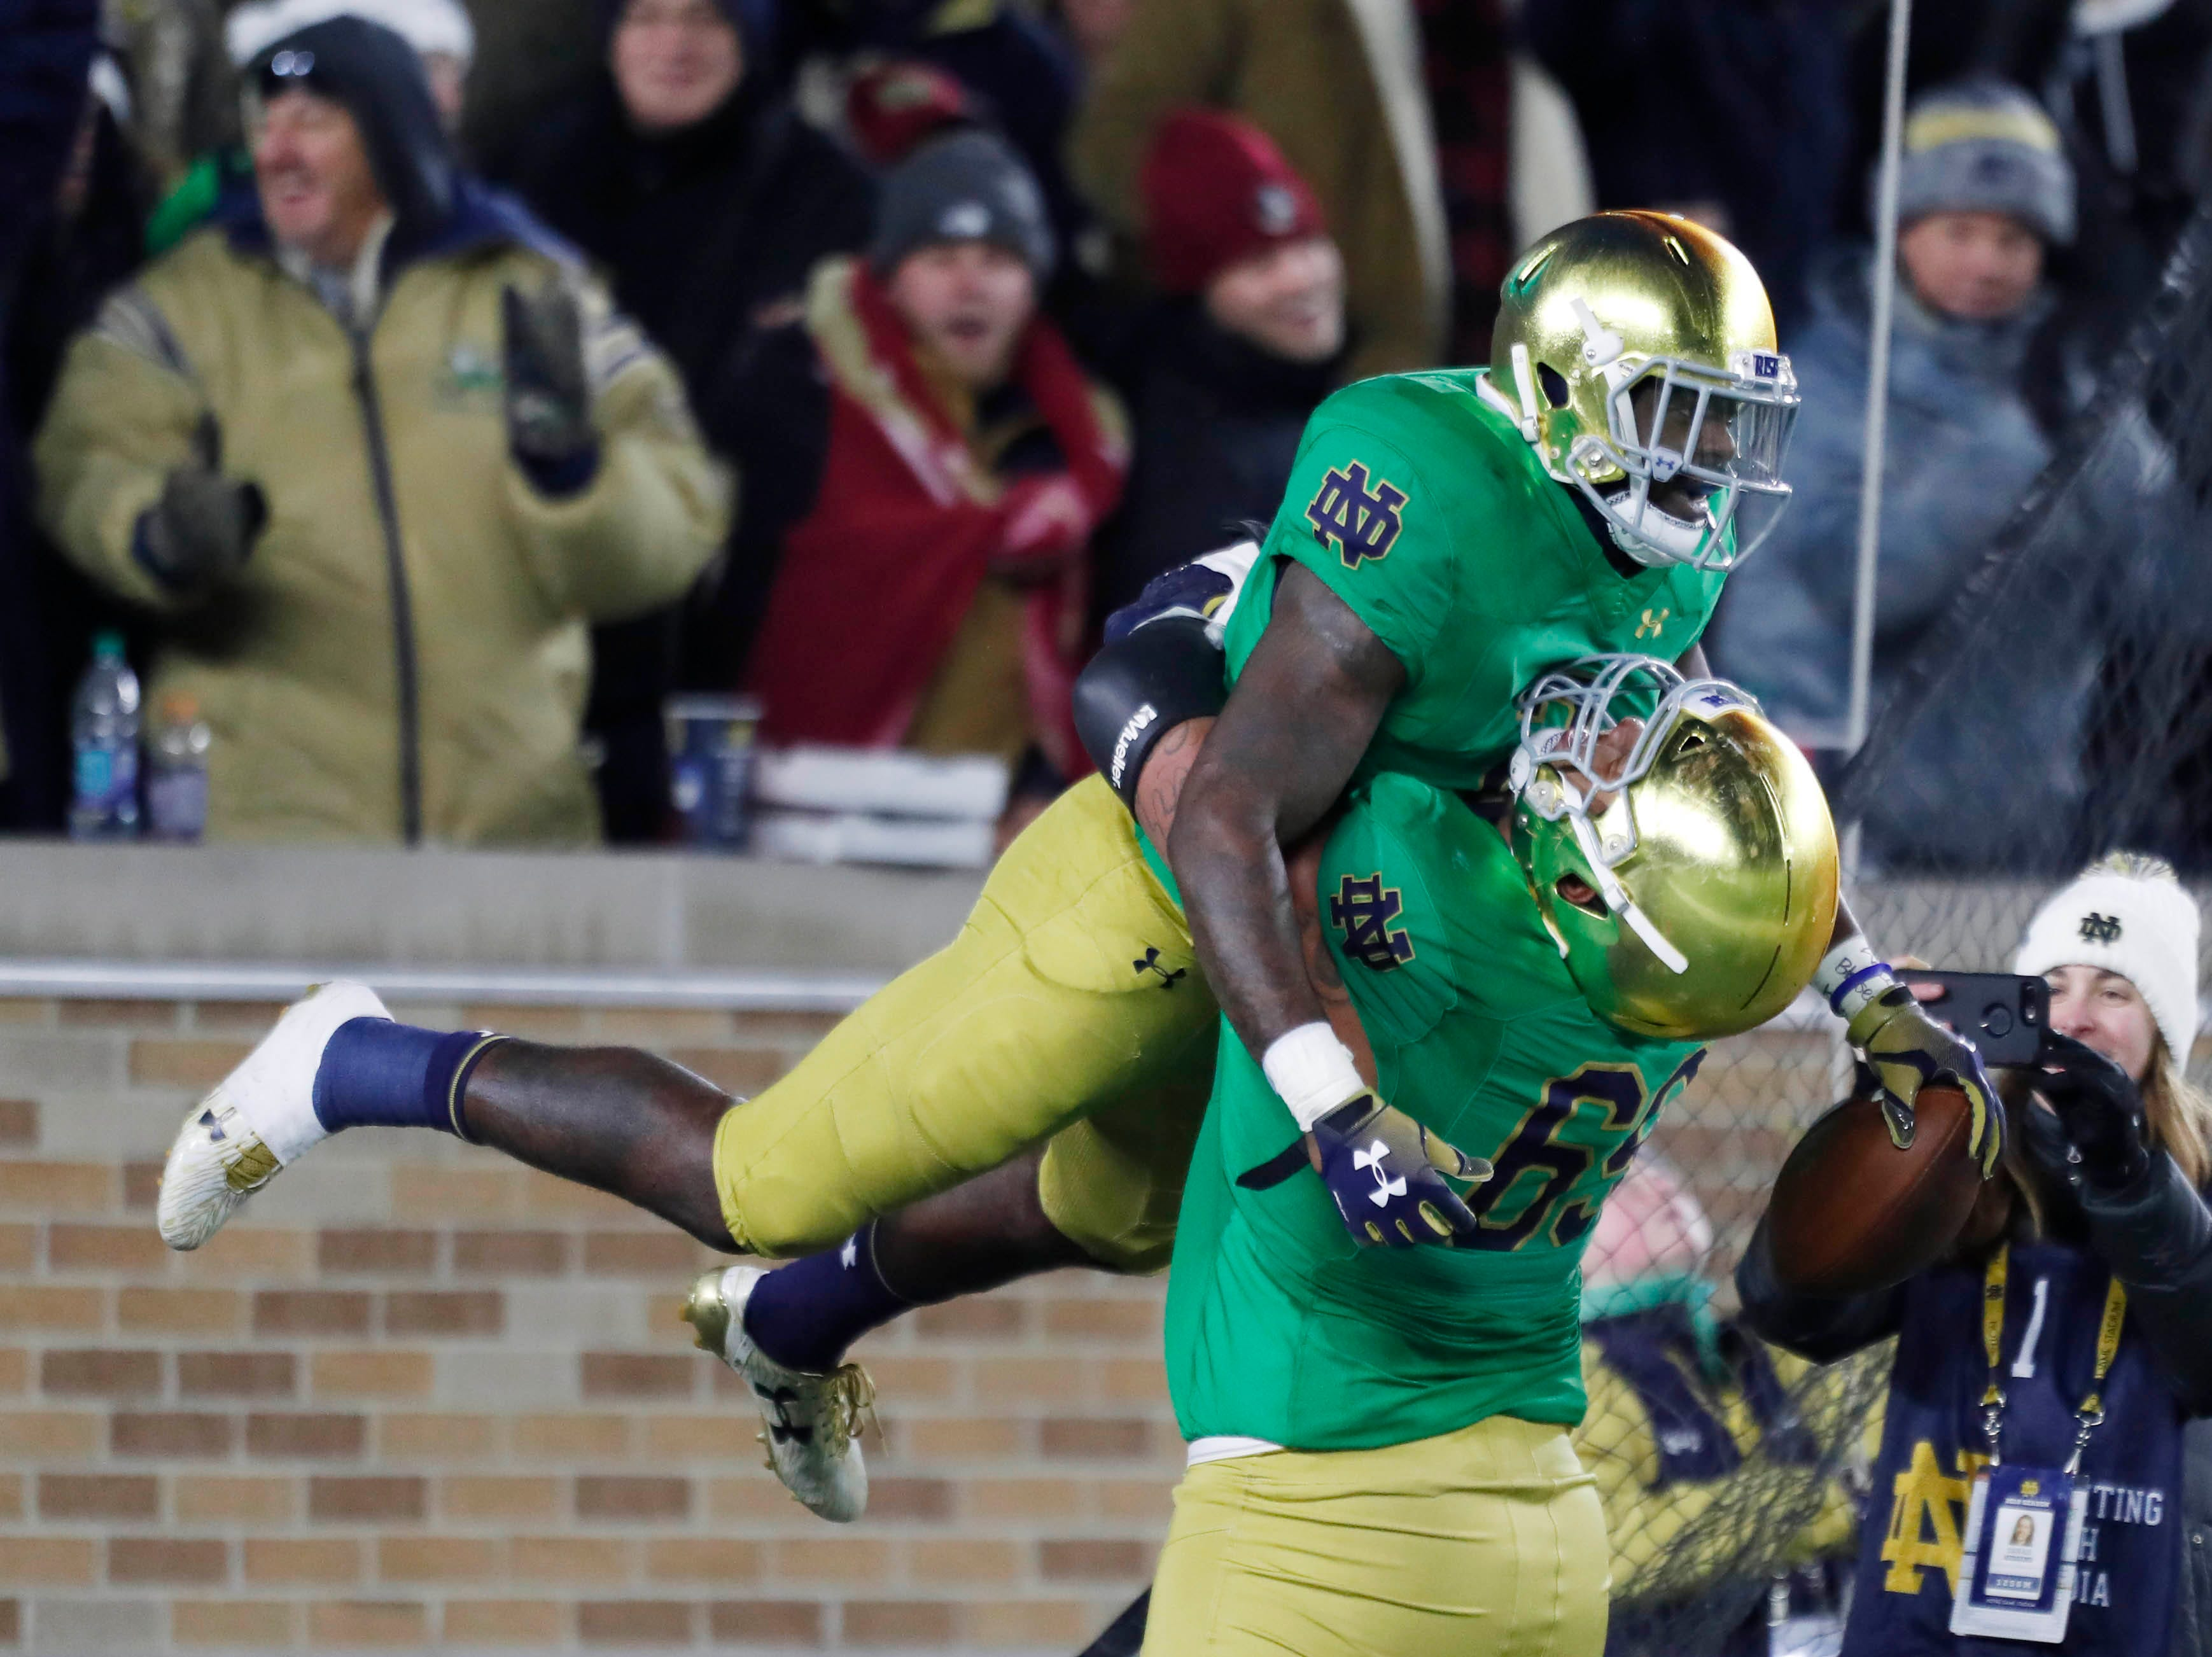 Nov 10, 2018; South Bend, IN, USA; Notre Dame Fighting Irish running back Dexter Williams (2) celebrates with offensive lineman Aaron Banks (69) after scoring on a 58 yard touchdown run against the Florida State Seminoles during the second quarter at Notre Dame Stadium. Mandatory Credit: Brian Spurlock-USA TODAY Sports